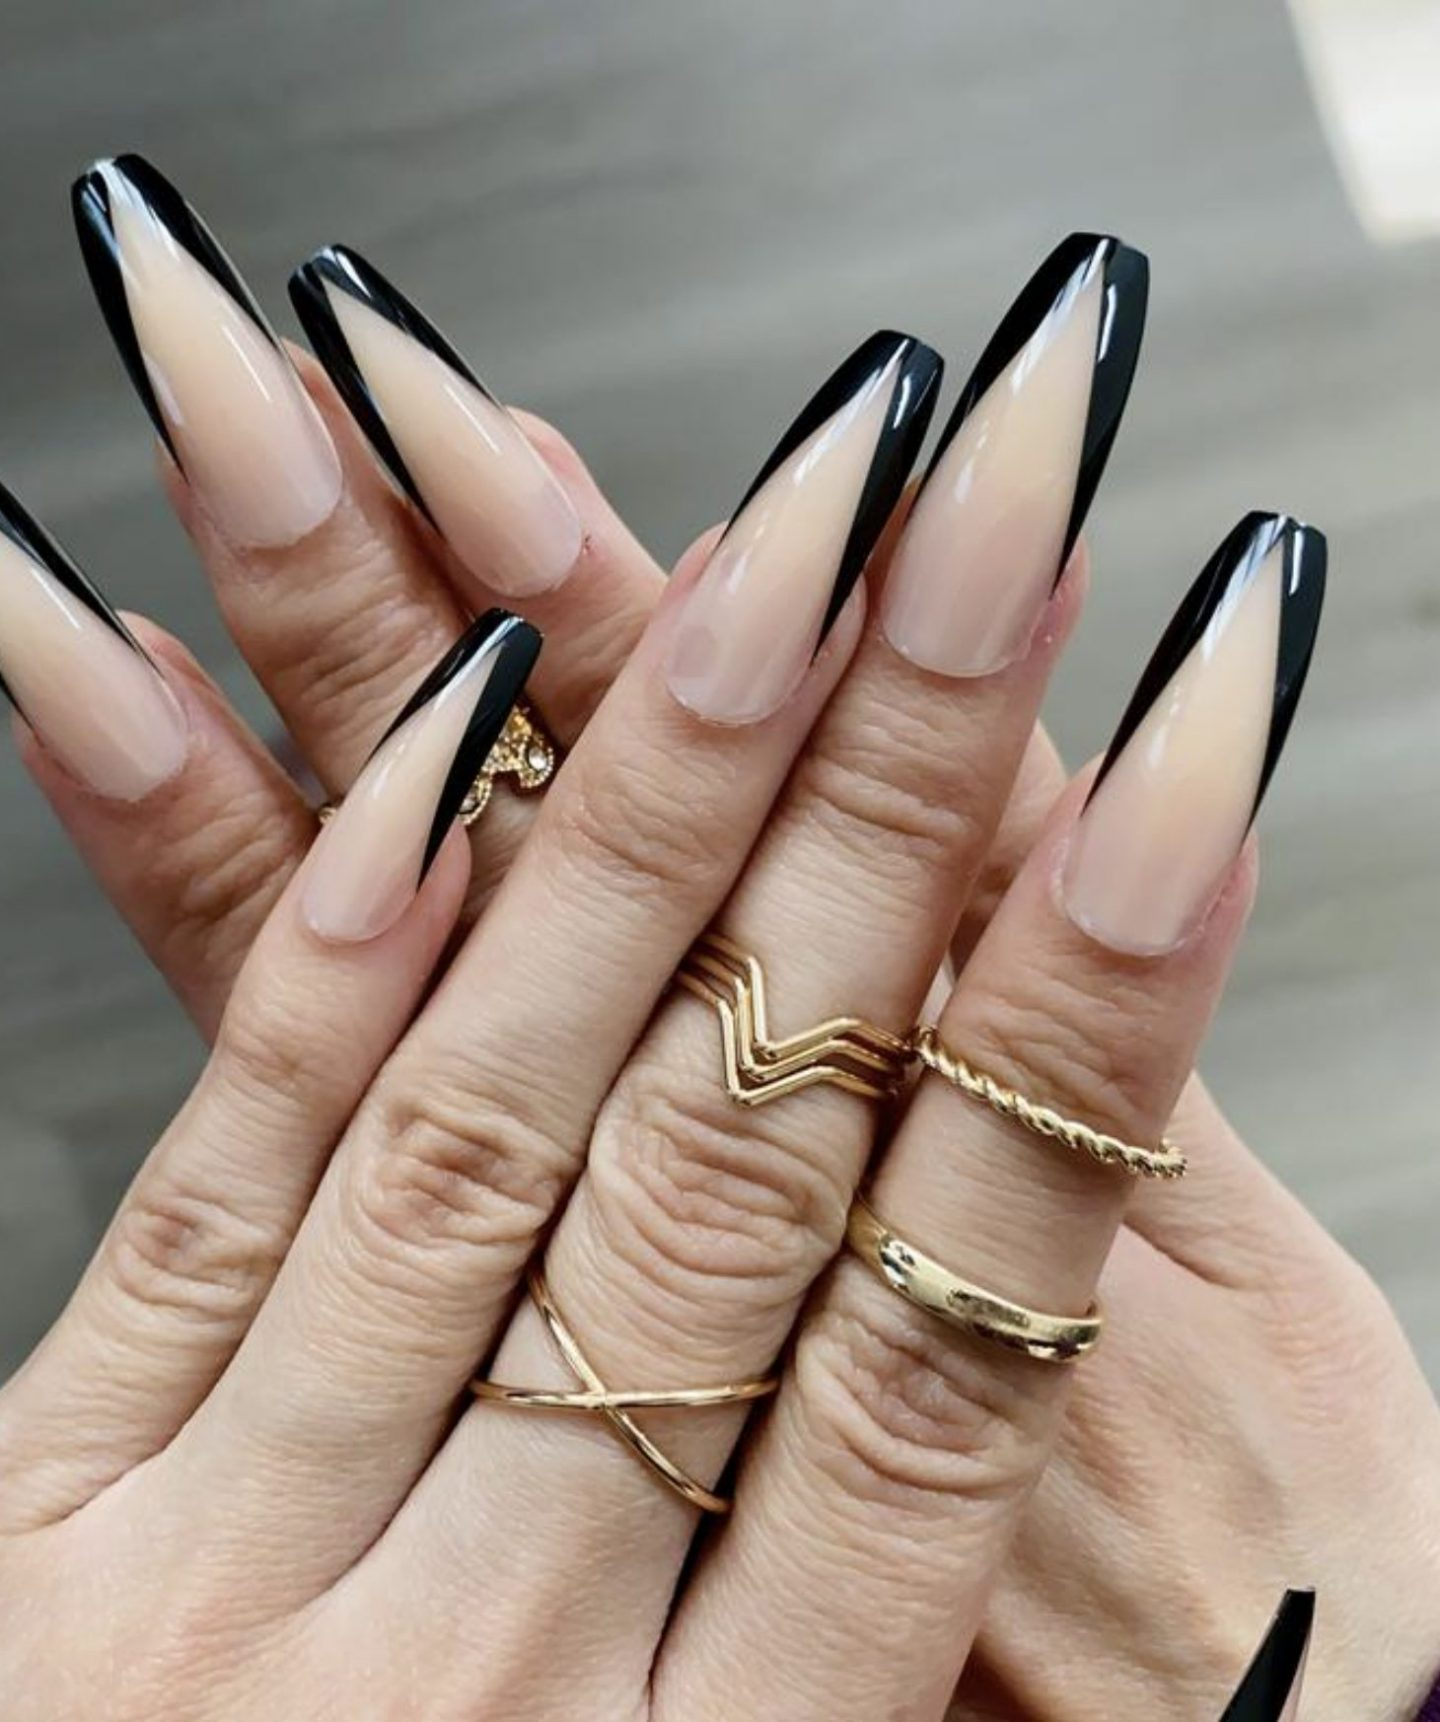 Black French tip coffin nails